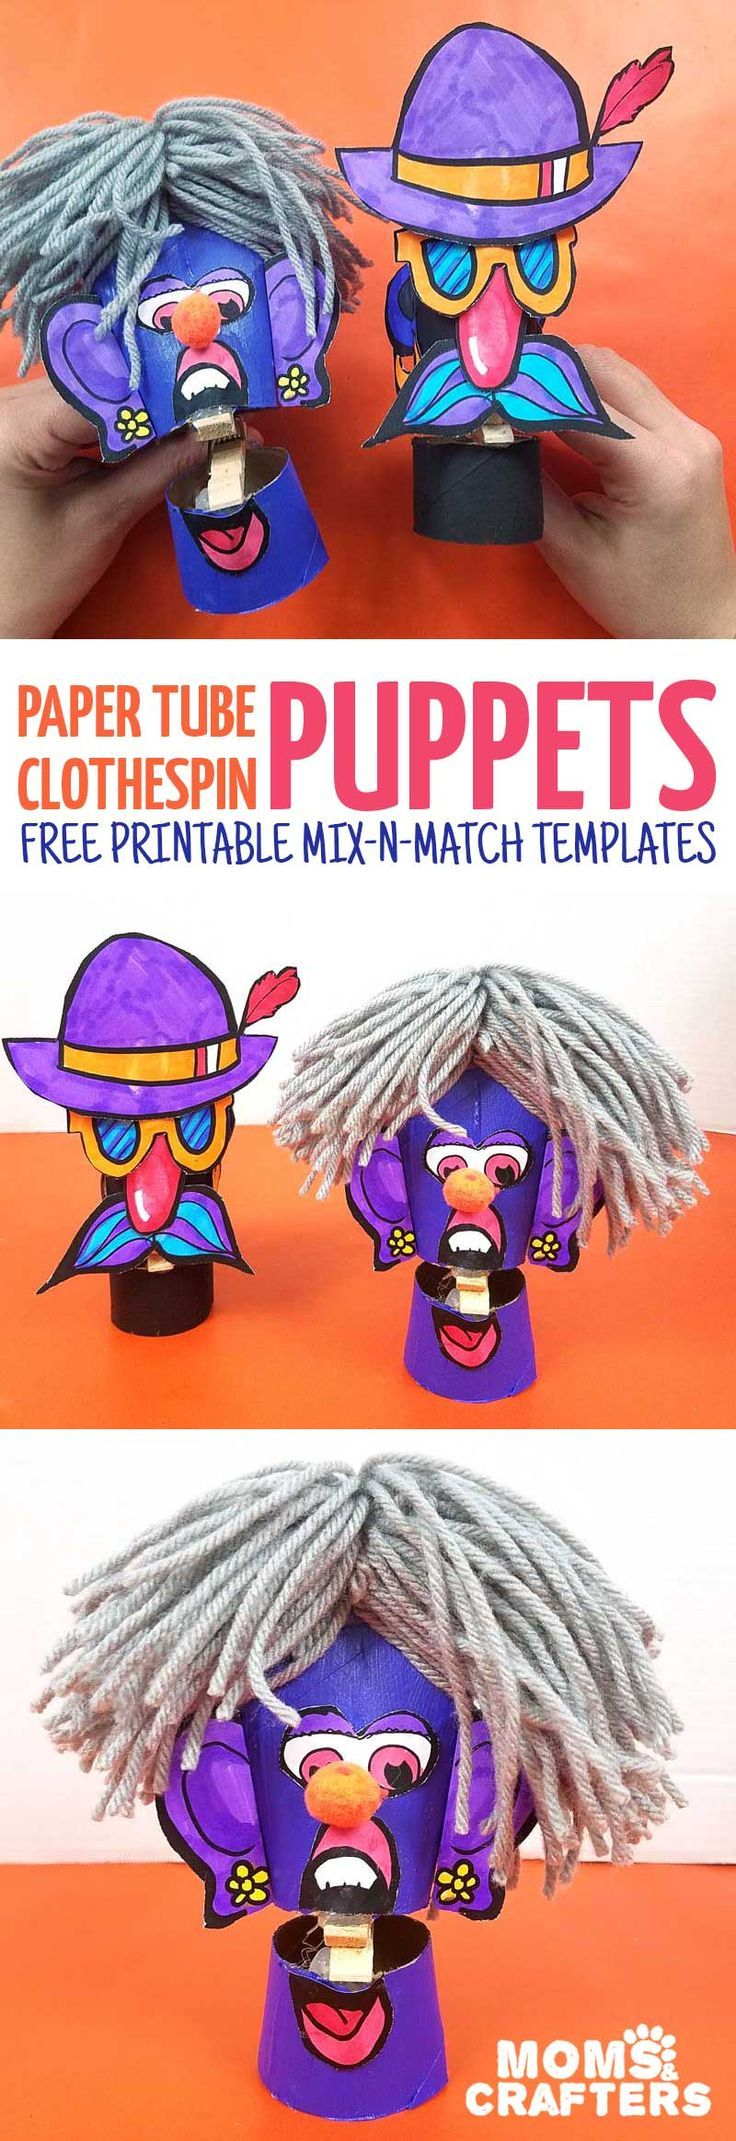 Make These Adorable Toilet Paper Roll Clothespin Puppets Using The Free Paper Craft Template It Includes Loads Of Mix And Match Facial Featues And